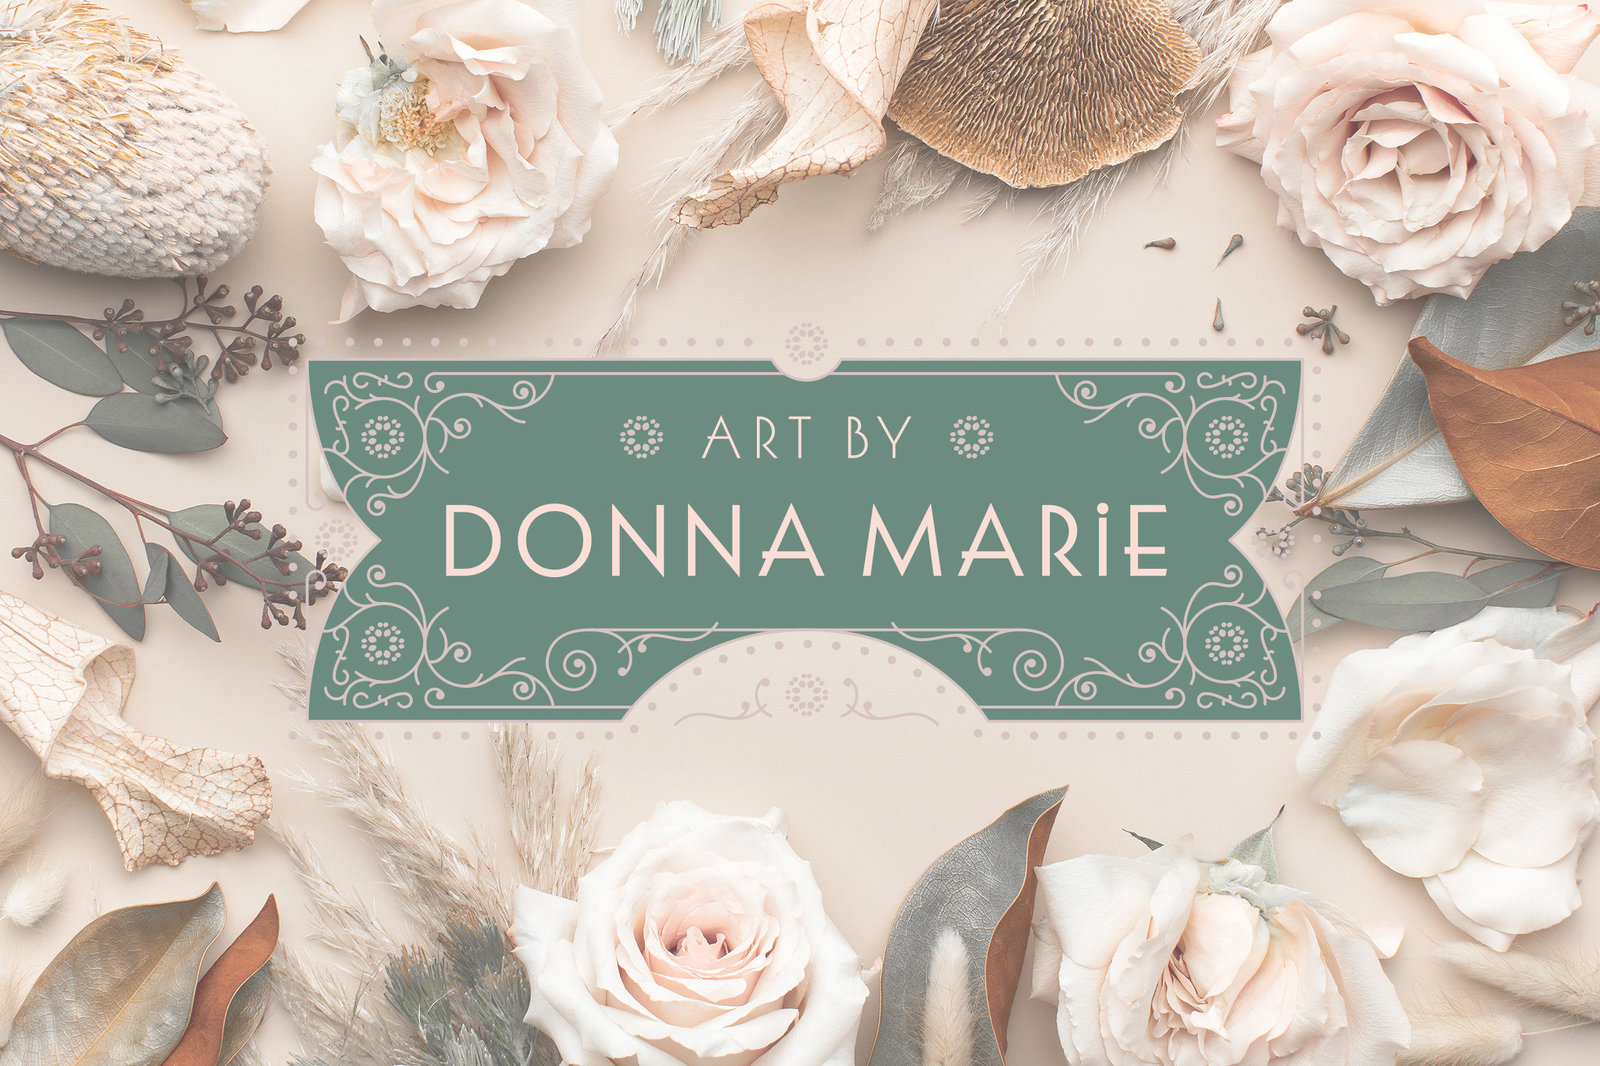 art-by-donna-marie-art-nouveau-branding-logo-design